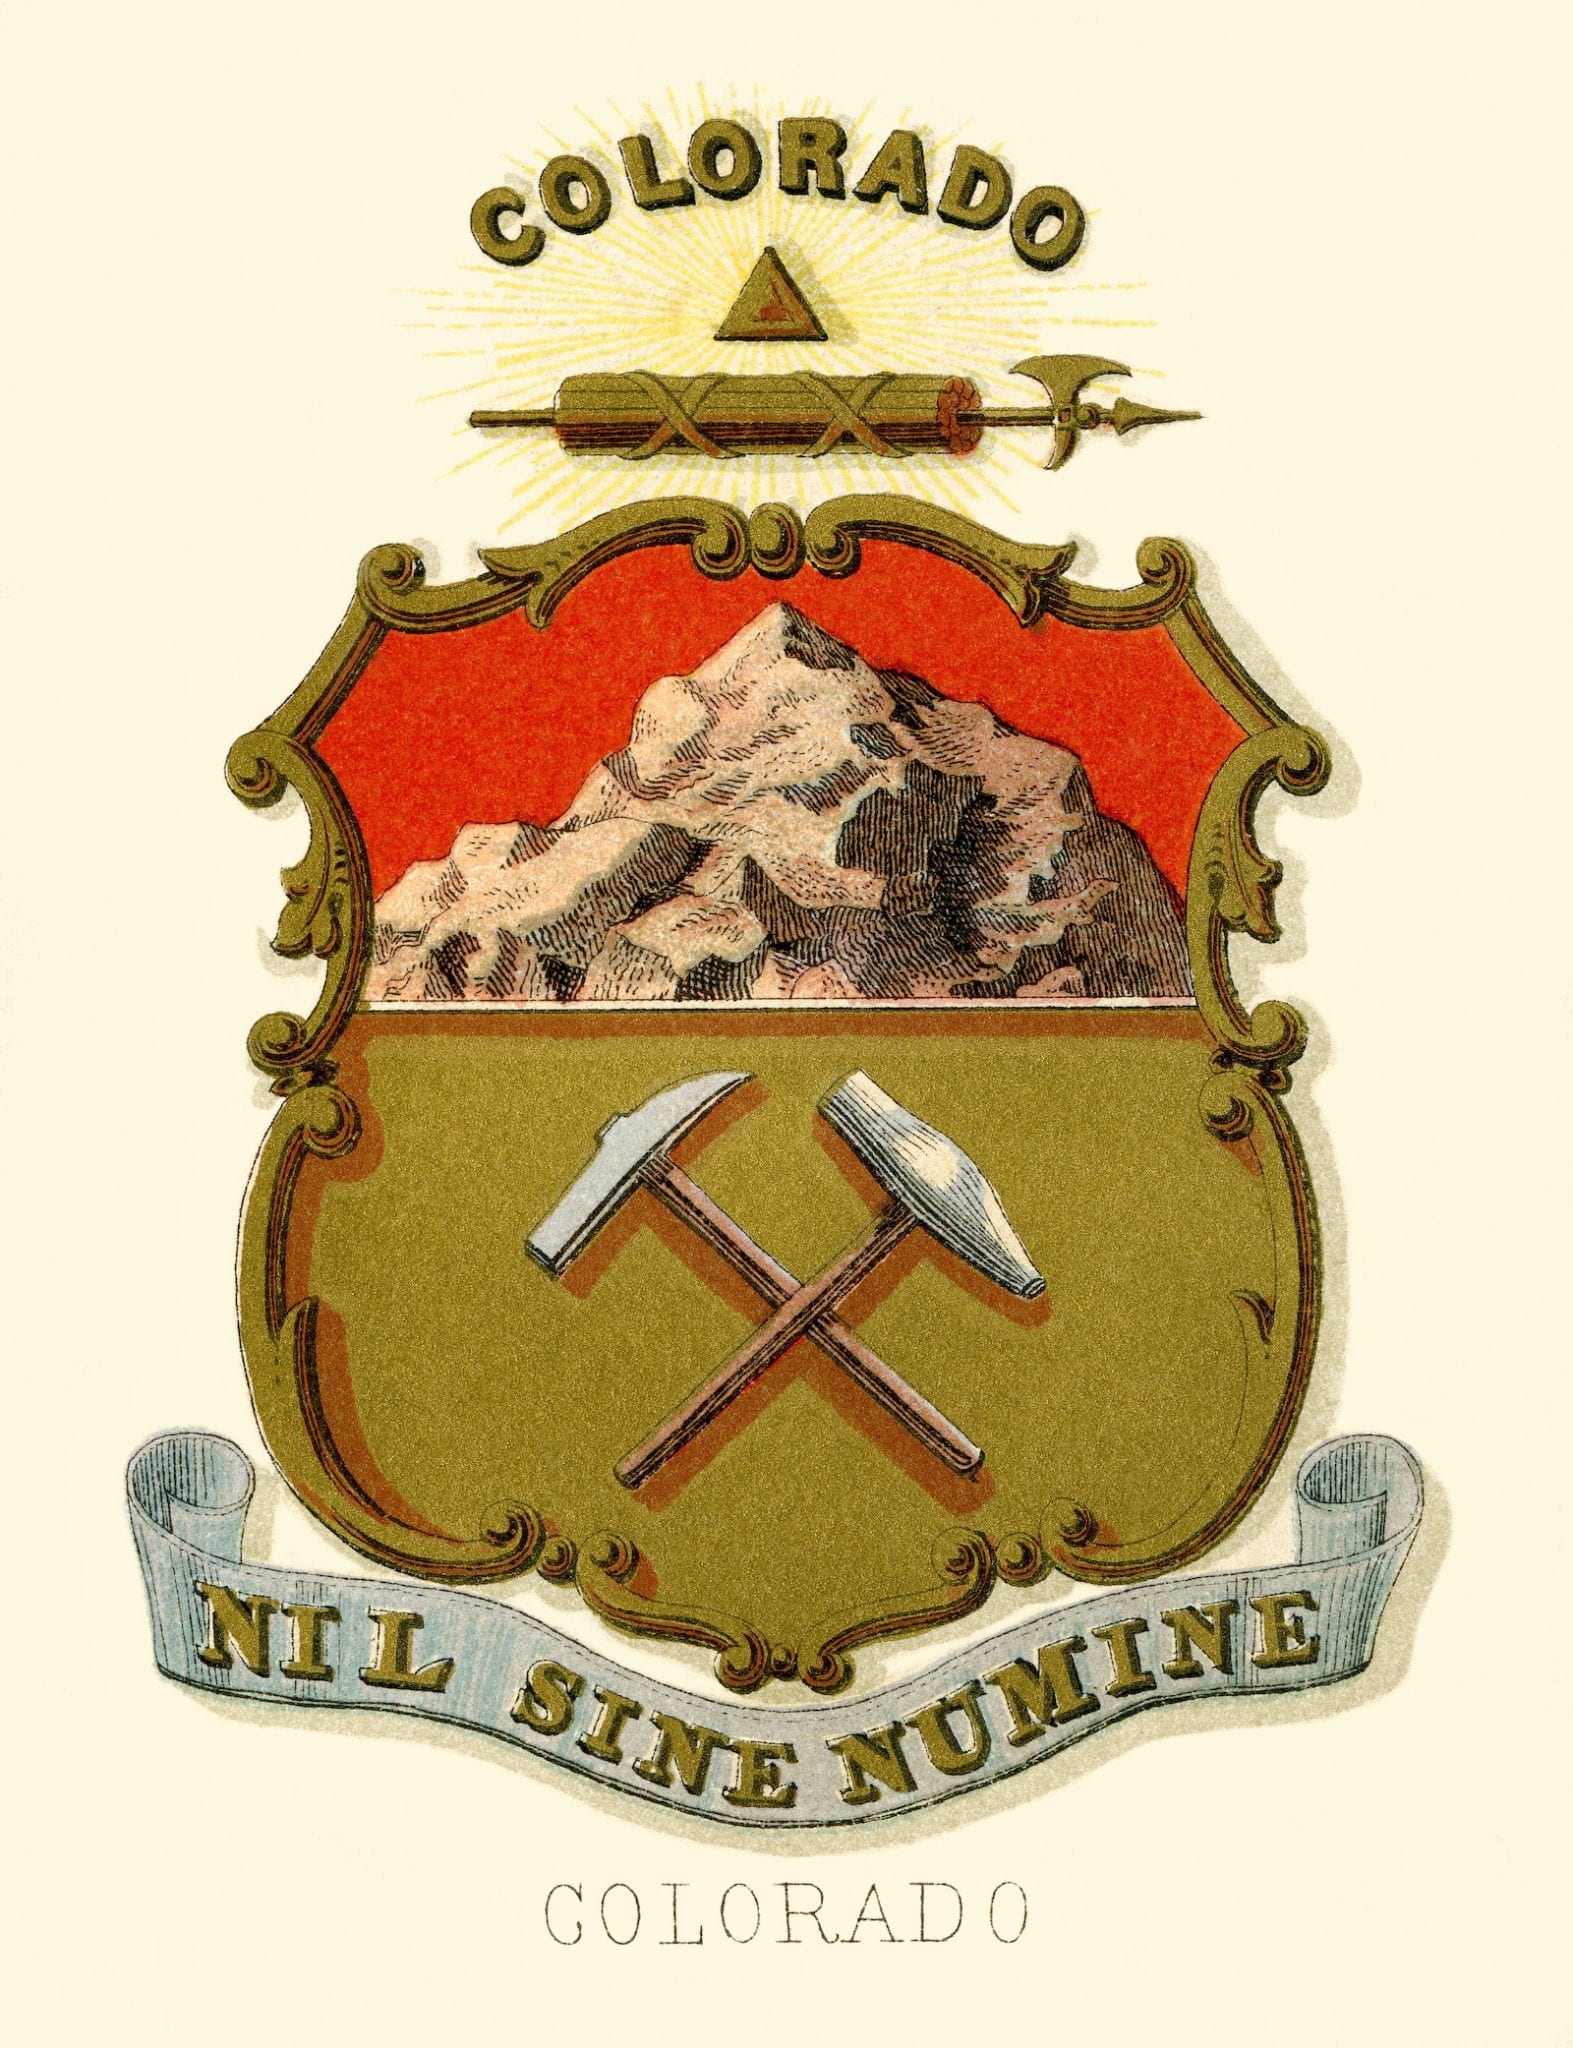 Colorado Historical Coat Of Arms Illustrated 1876